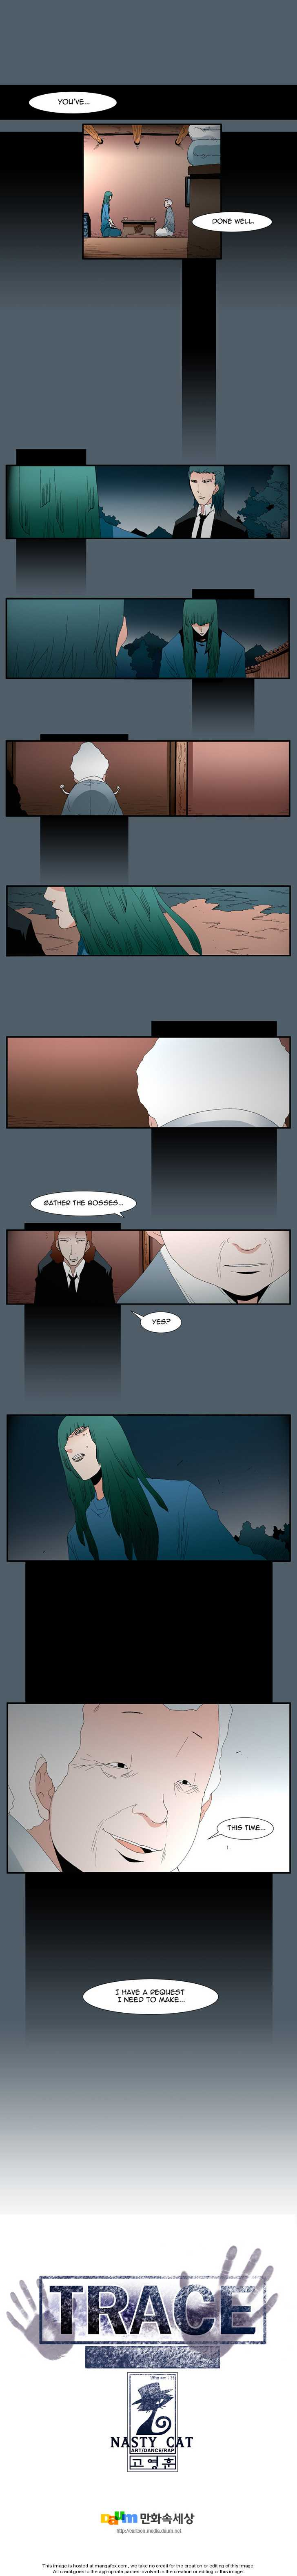 Trace 2 Page 4